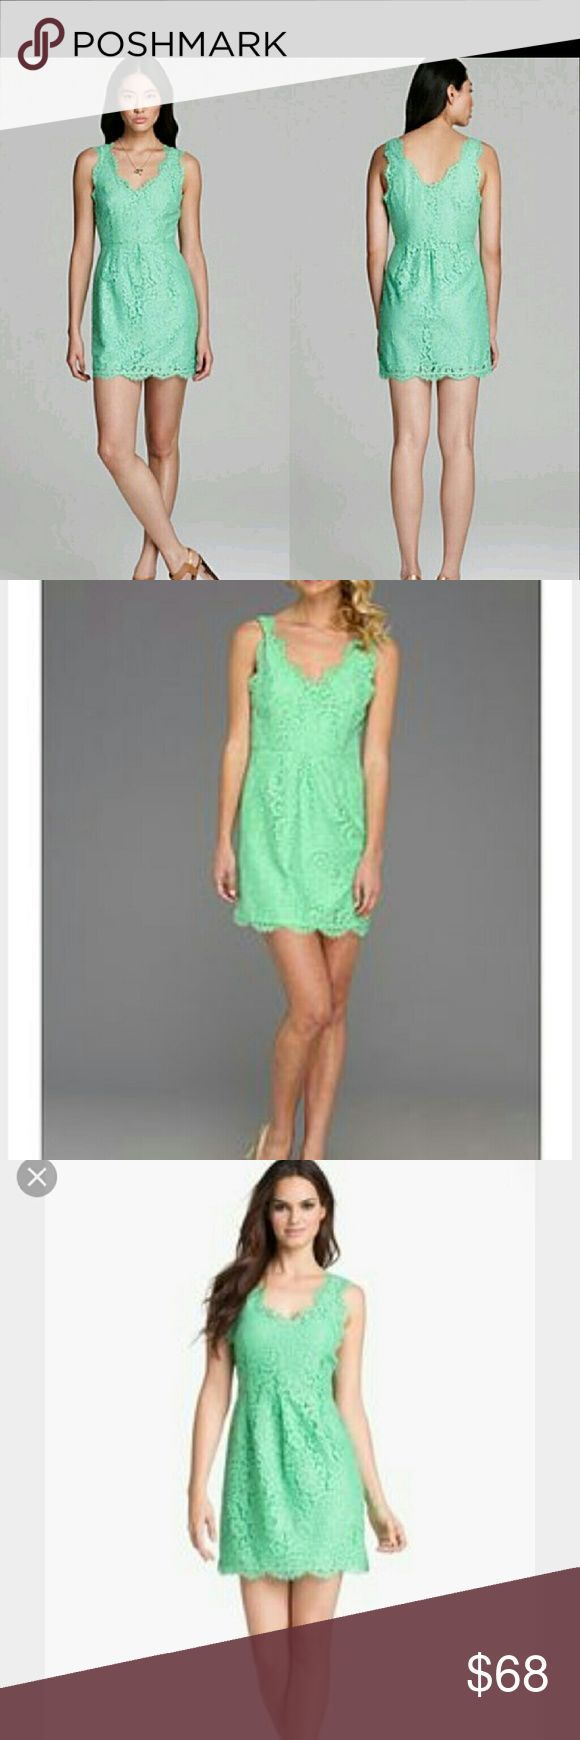 Joie Green rori lace dress xs Worn once in like new condition Joie Dresses Mini